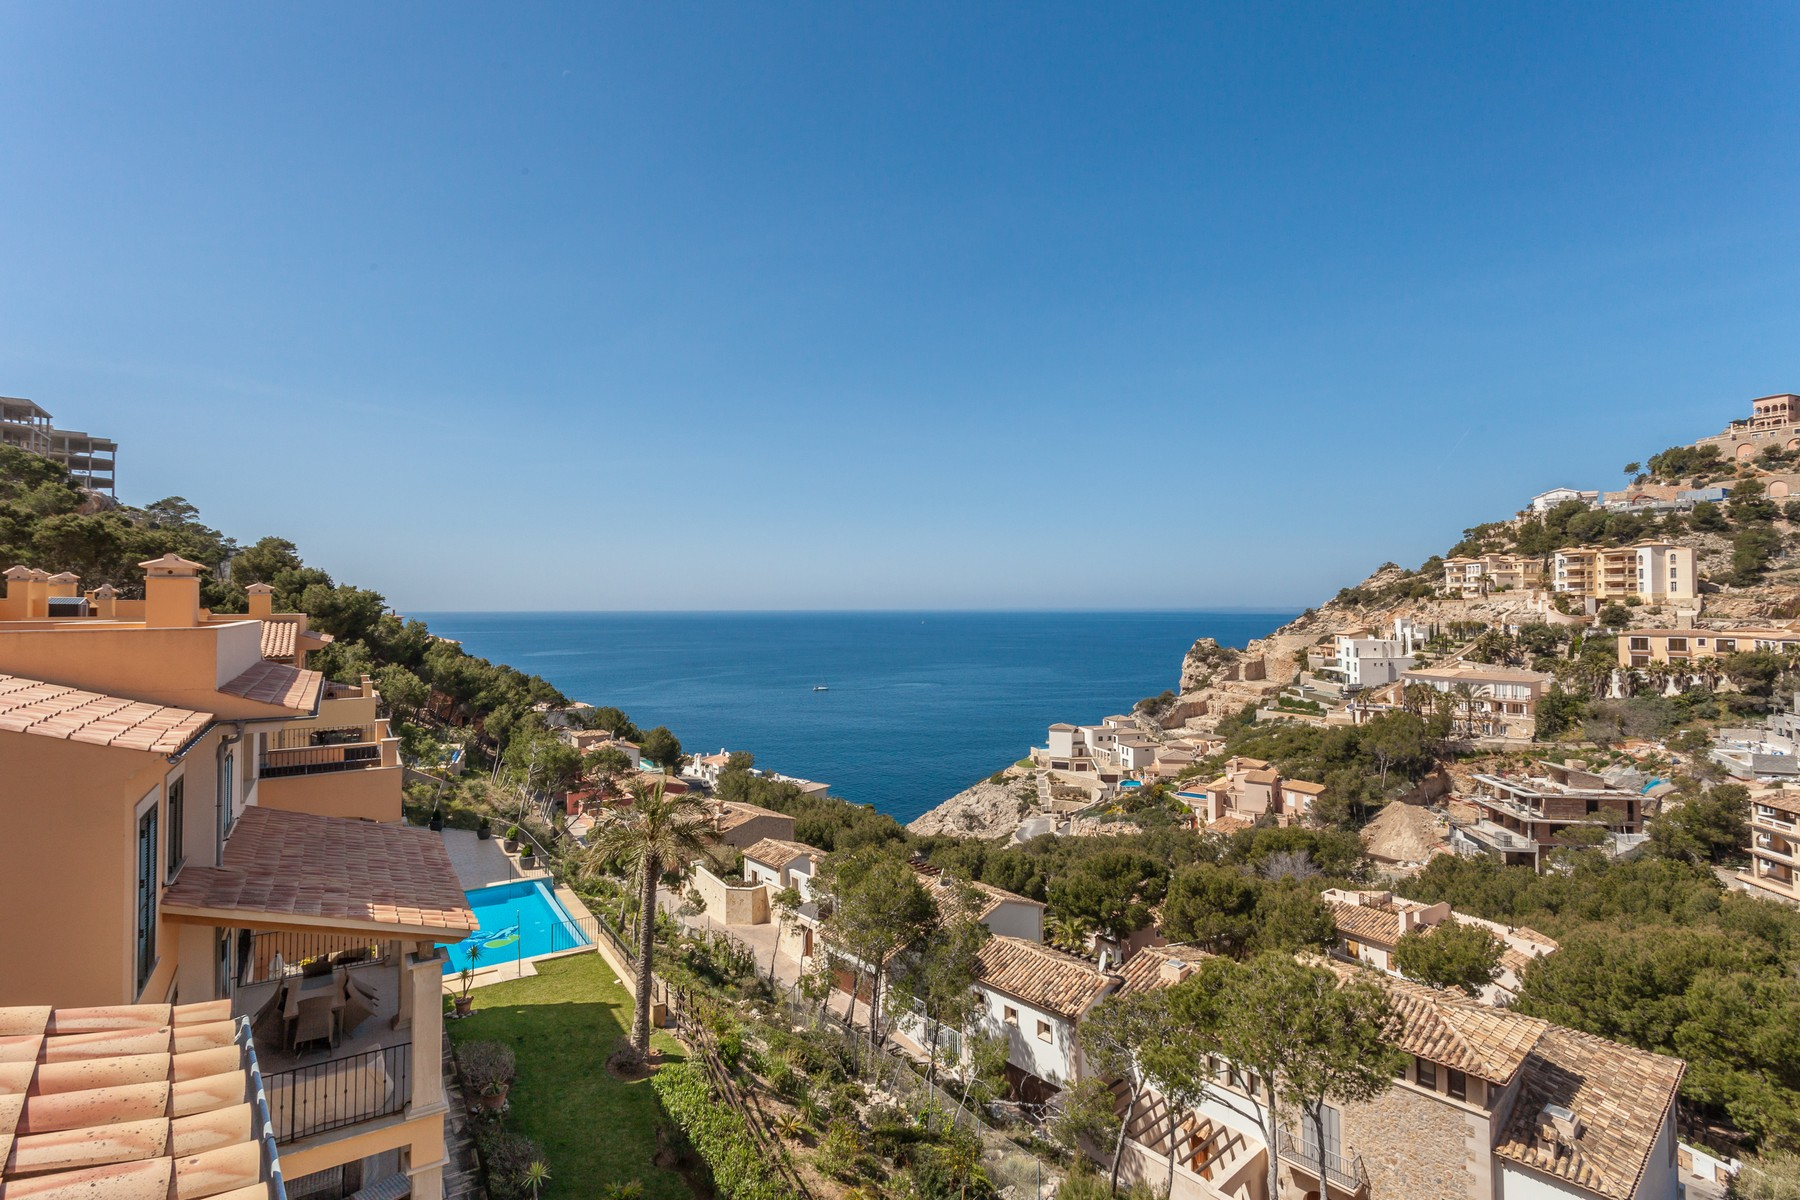 Single Family Home for Sale at Penthouse in a small community in Cala Moragues Port Andratx, Mallorca, 07157 Spain